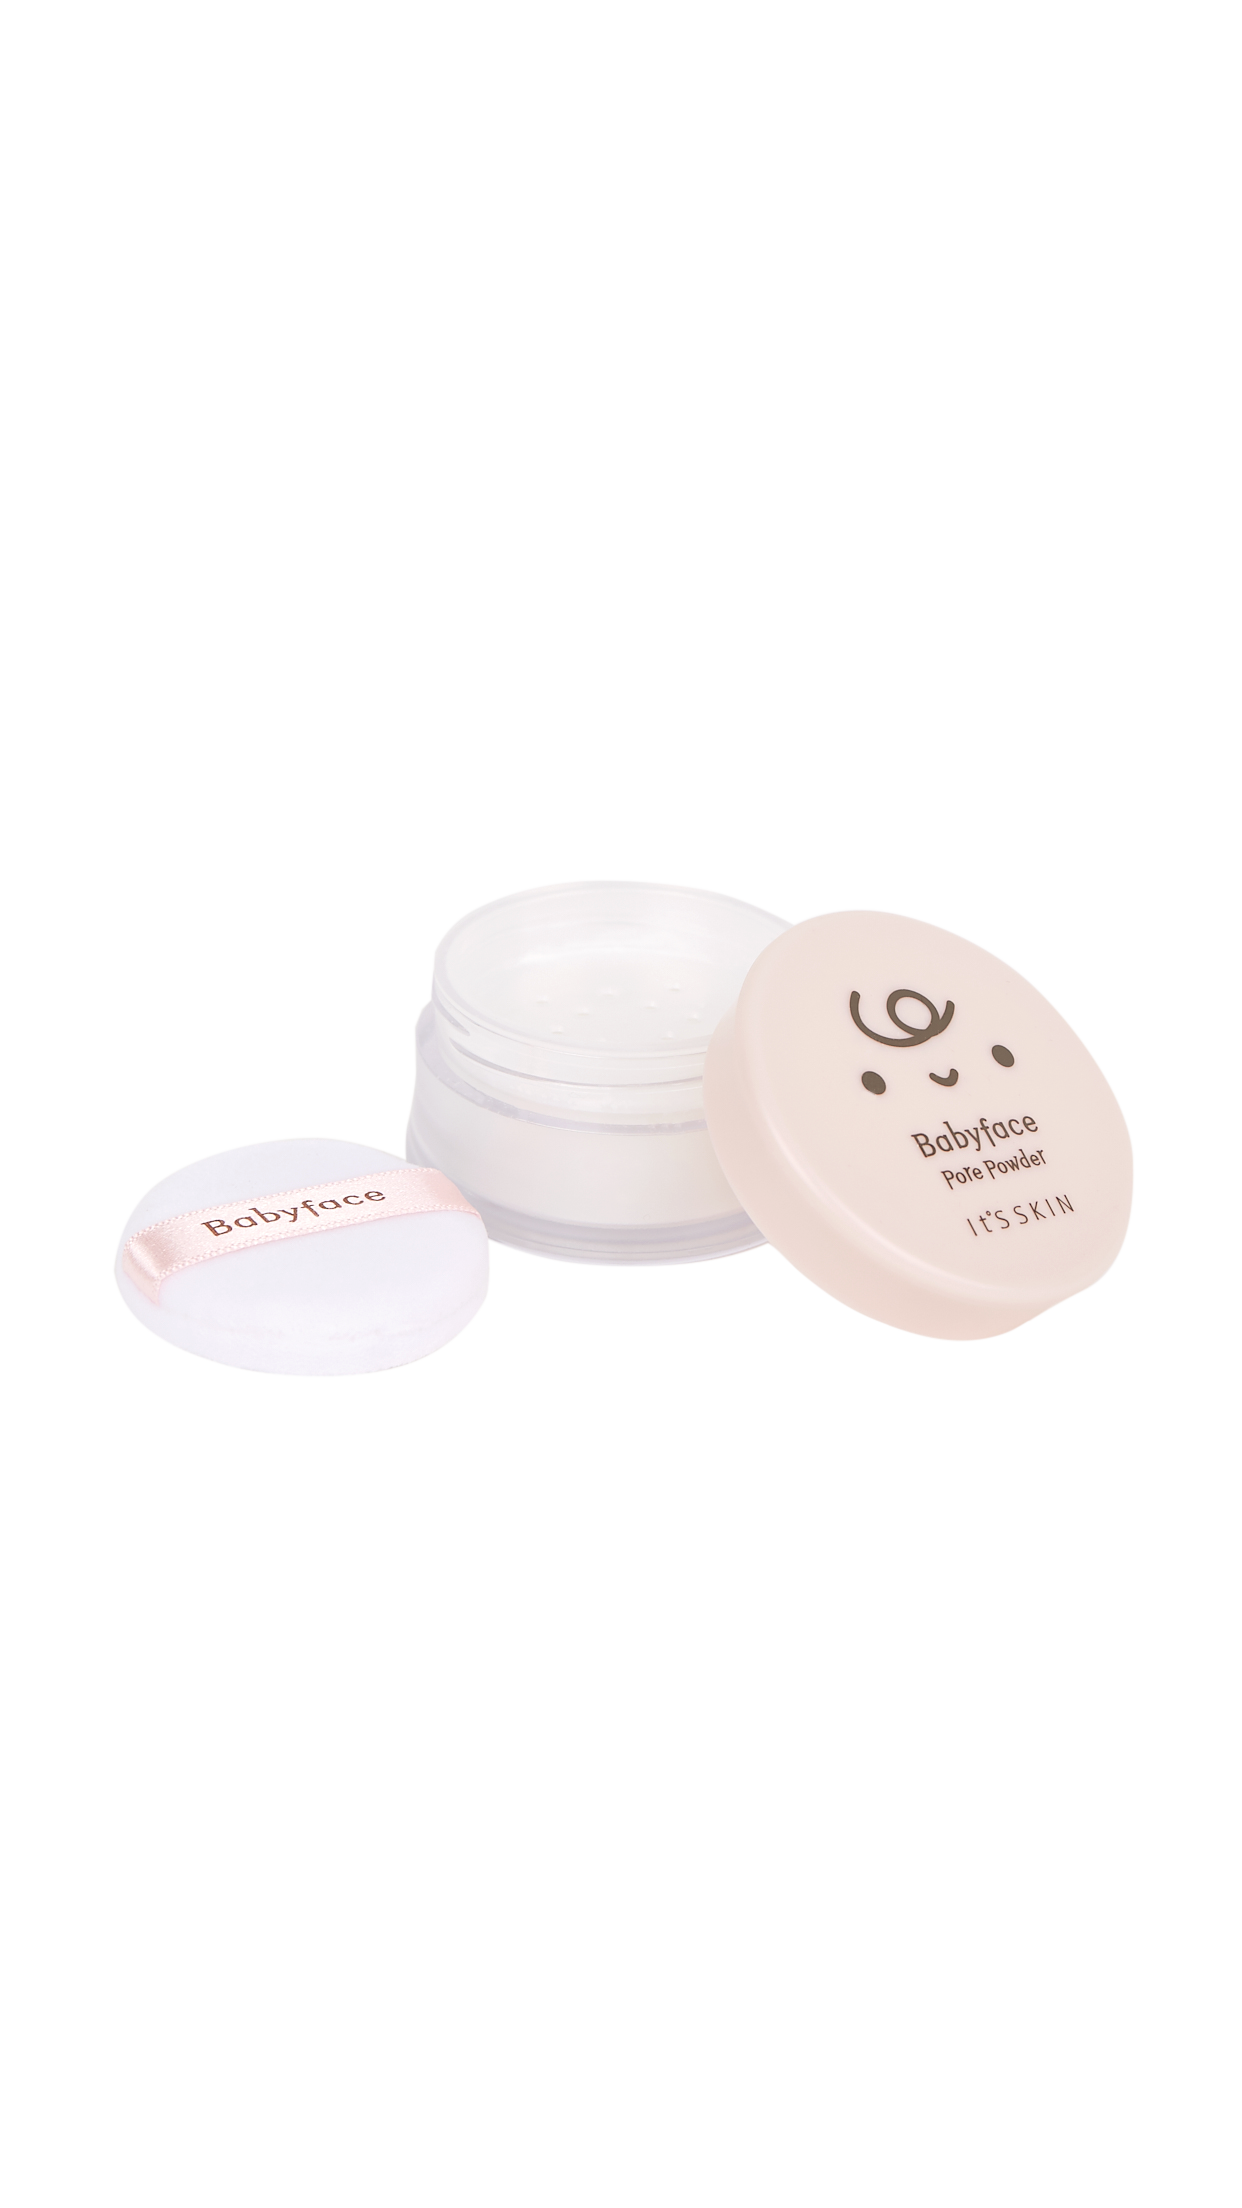 Babyface Pore Powder